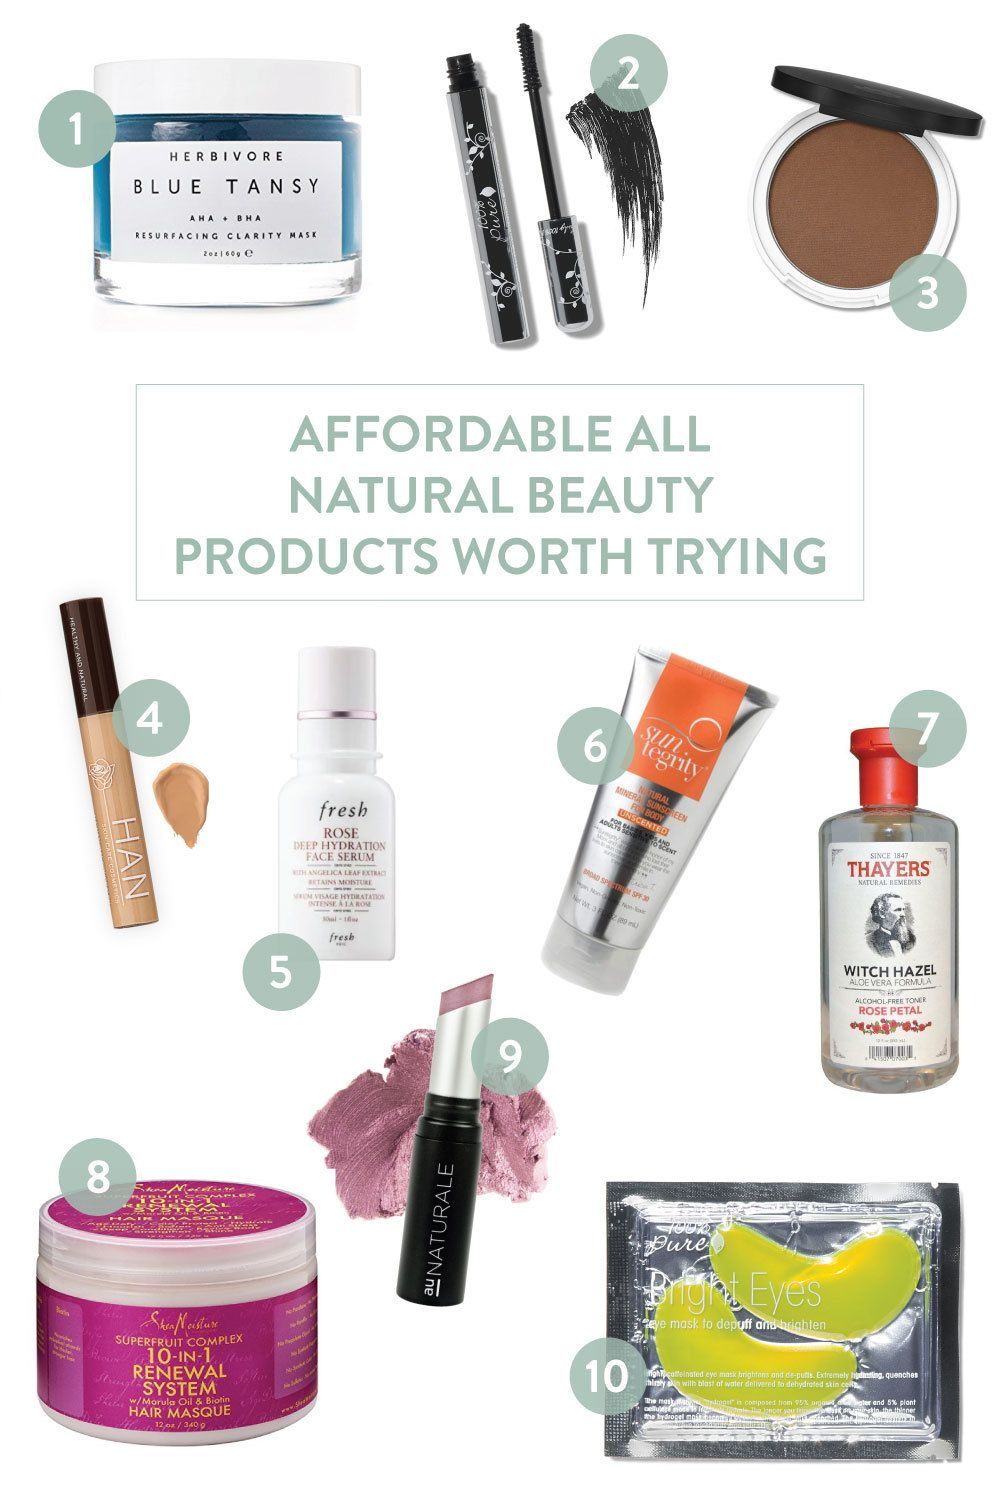 12 Affordable All Natural Beauty Products You Should Try